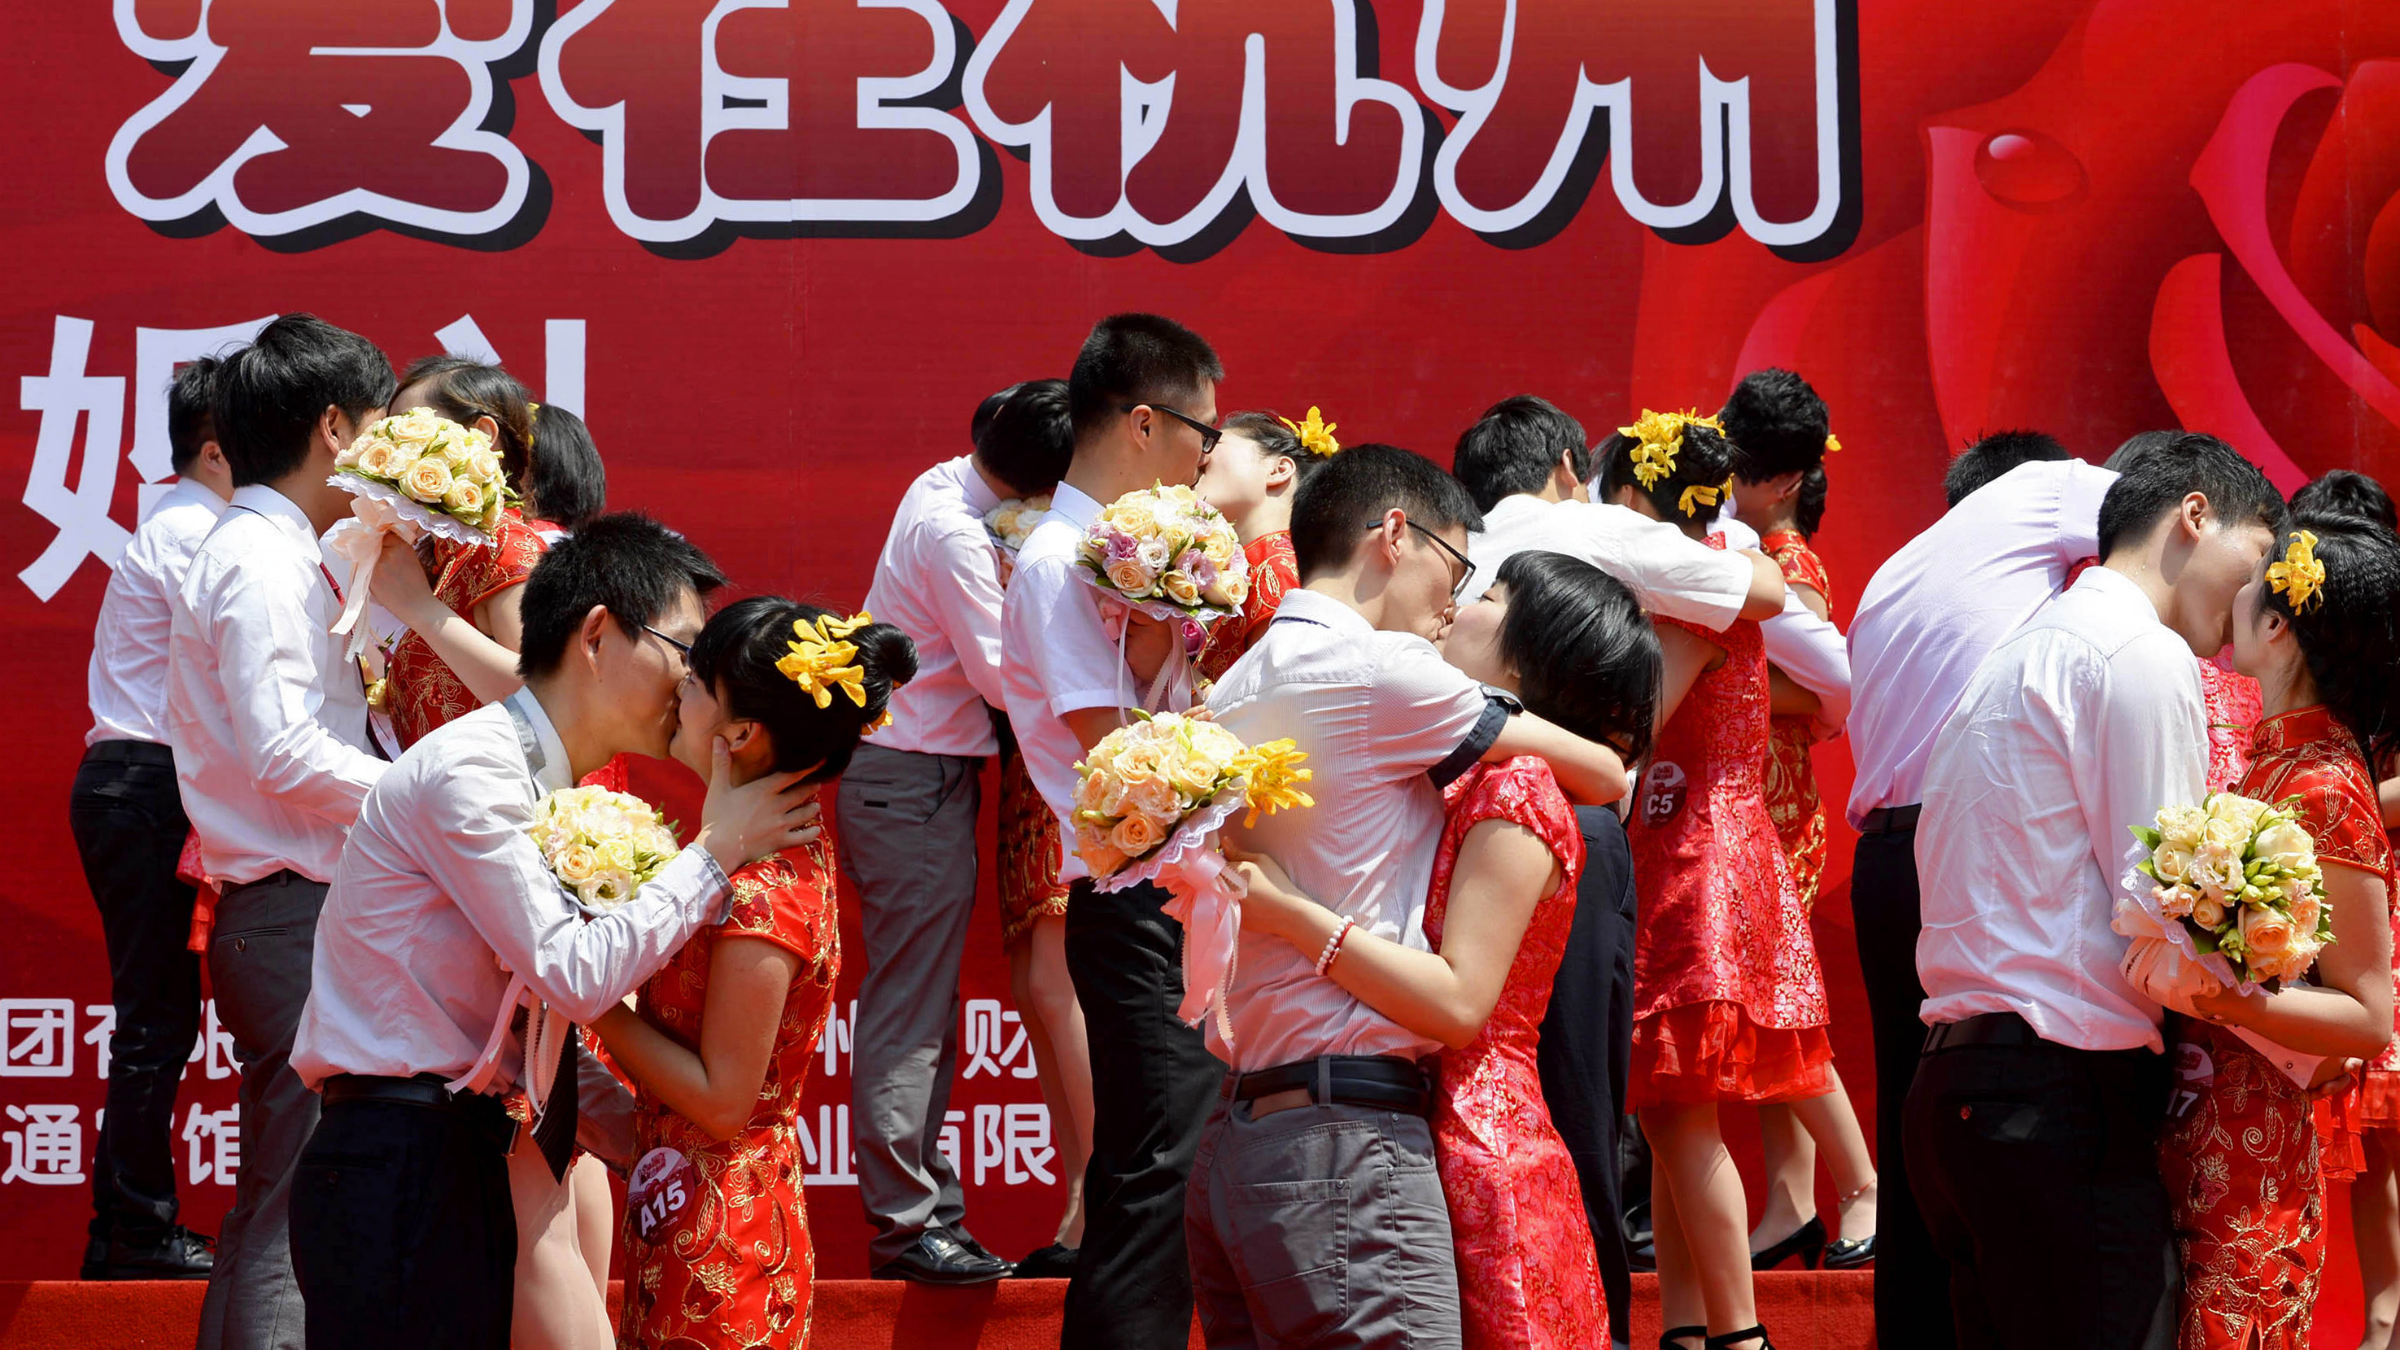 "Couples kiss as they participate in a mass wedding ceremony in Hangzhou, Zhejiang province May 19, 2013. According to local media, a total of 80 couples attended the ceremony on Sunday. The characters collectively read: ""Love in Hangzhou"". REUTERS/Stringer"